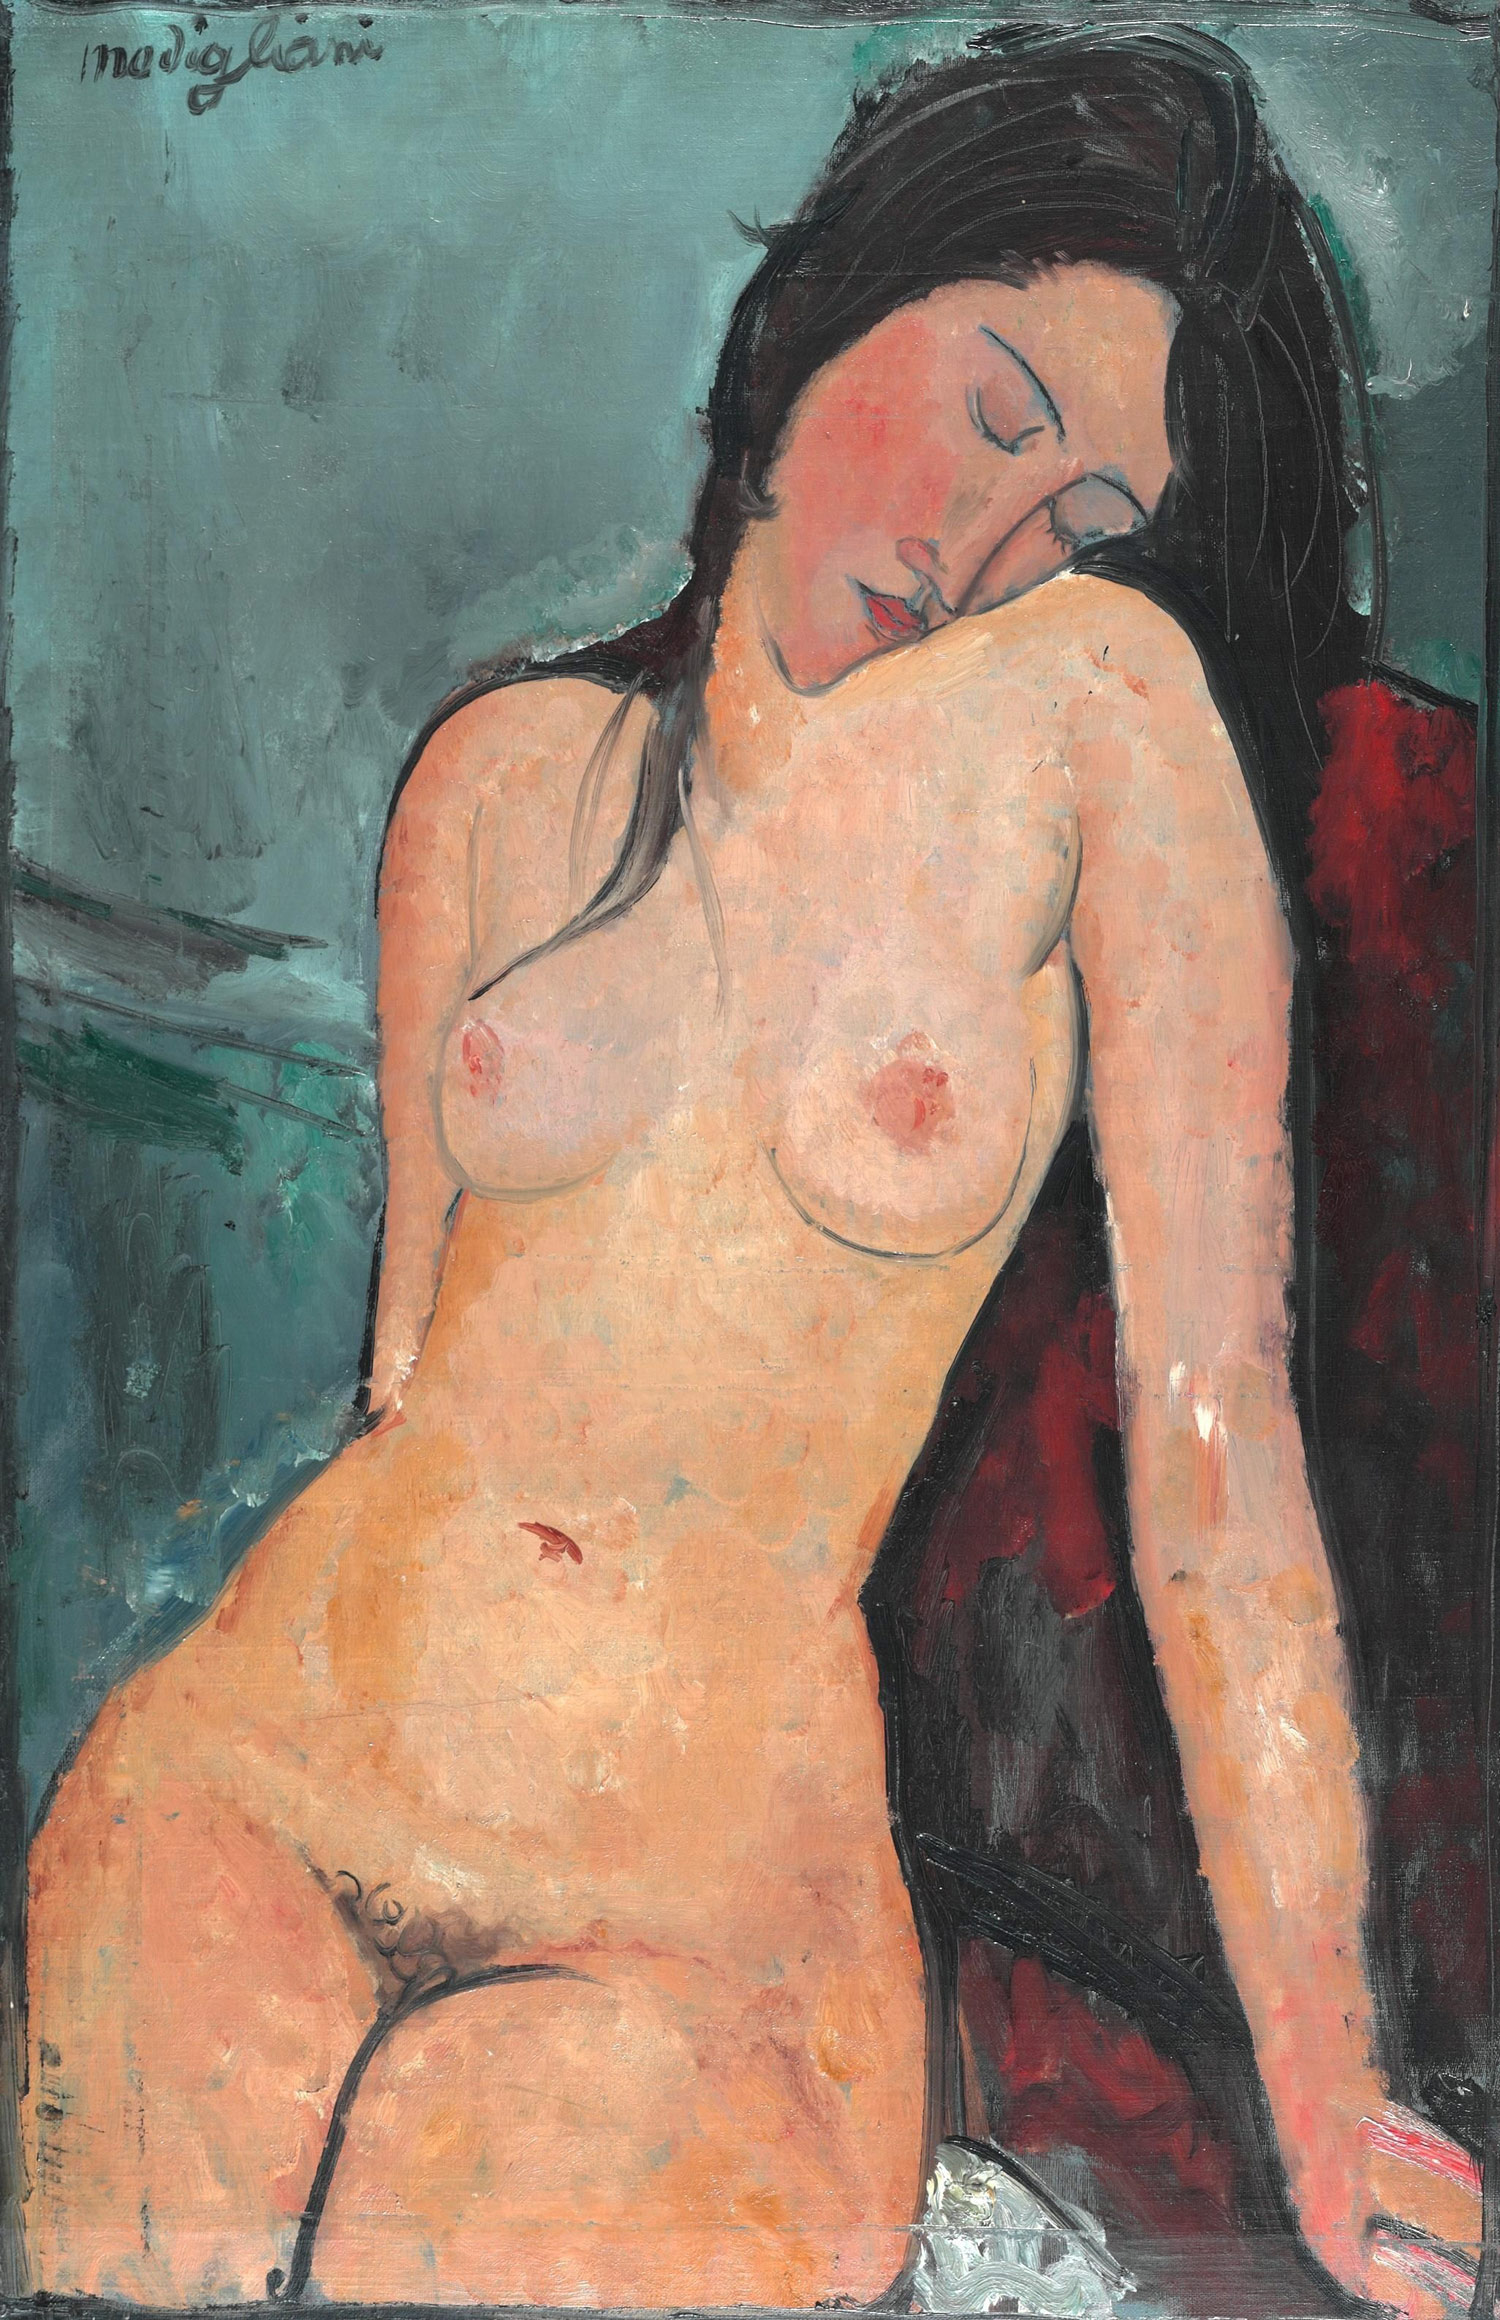 Amedeo Modigliani, Nudo seduto (Beatrice Hastings?) (1916; olio su tela, 92 x 60 cm; Londra, Courtauld Gallery)